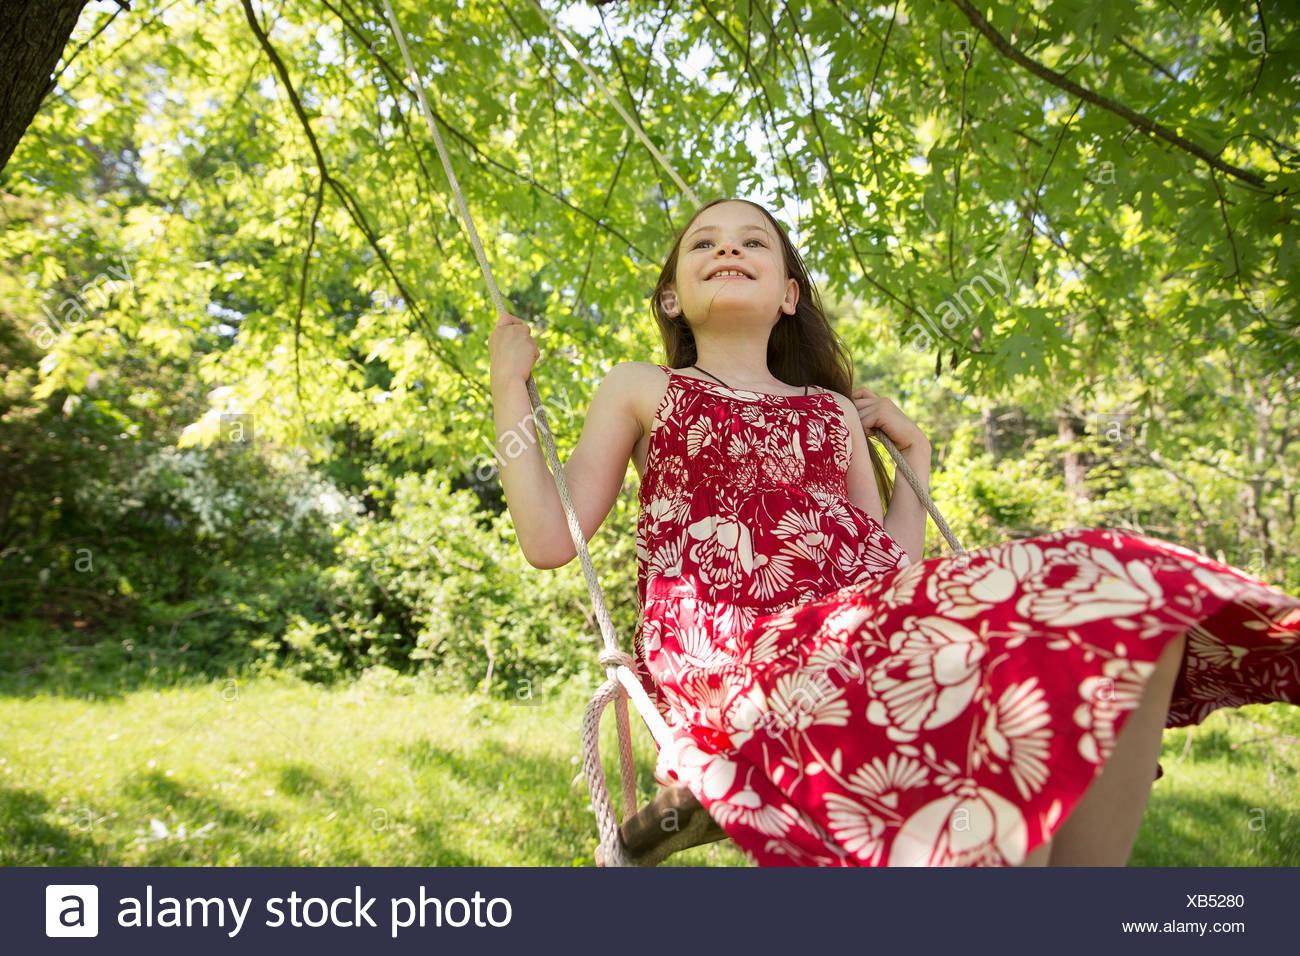 Summer. A girl in a sundress on a swing suspending from the branches of a tree. - Stock Image